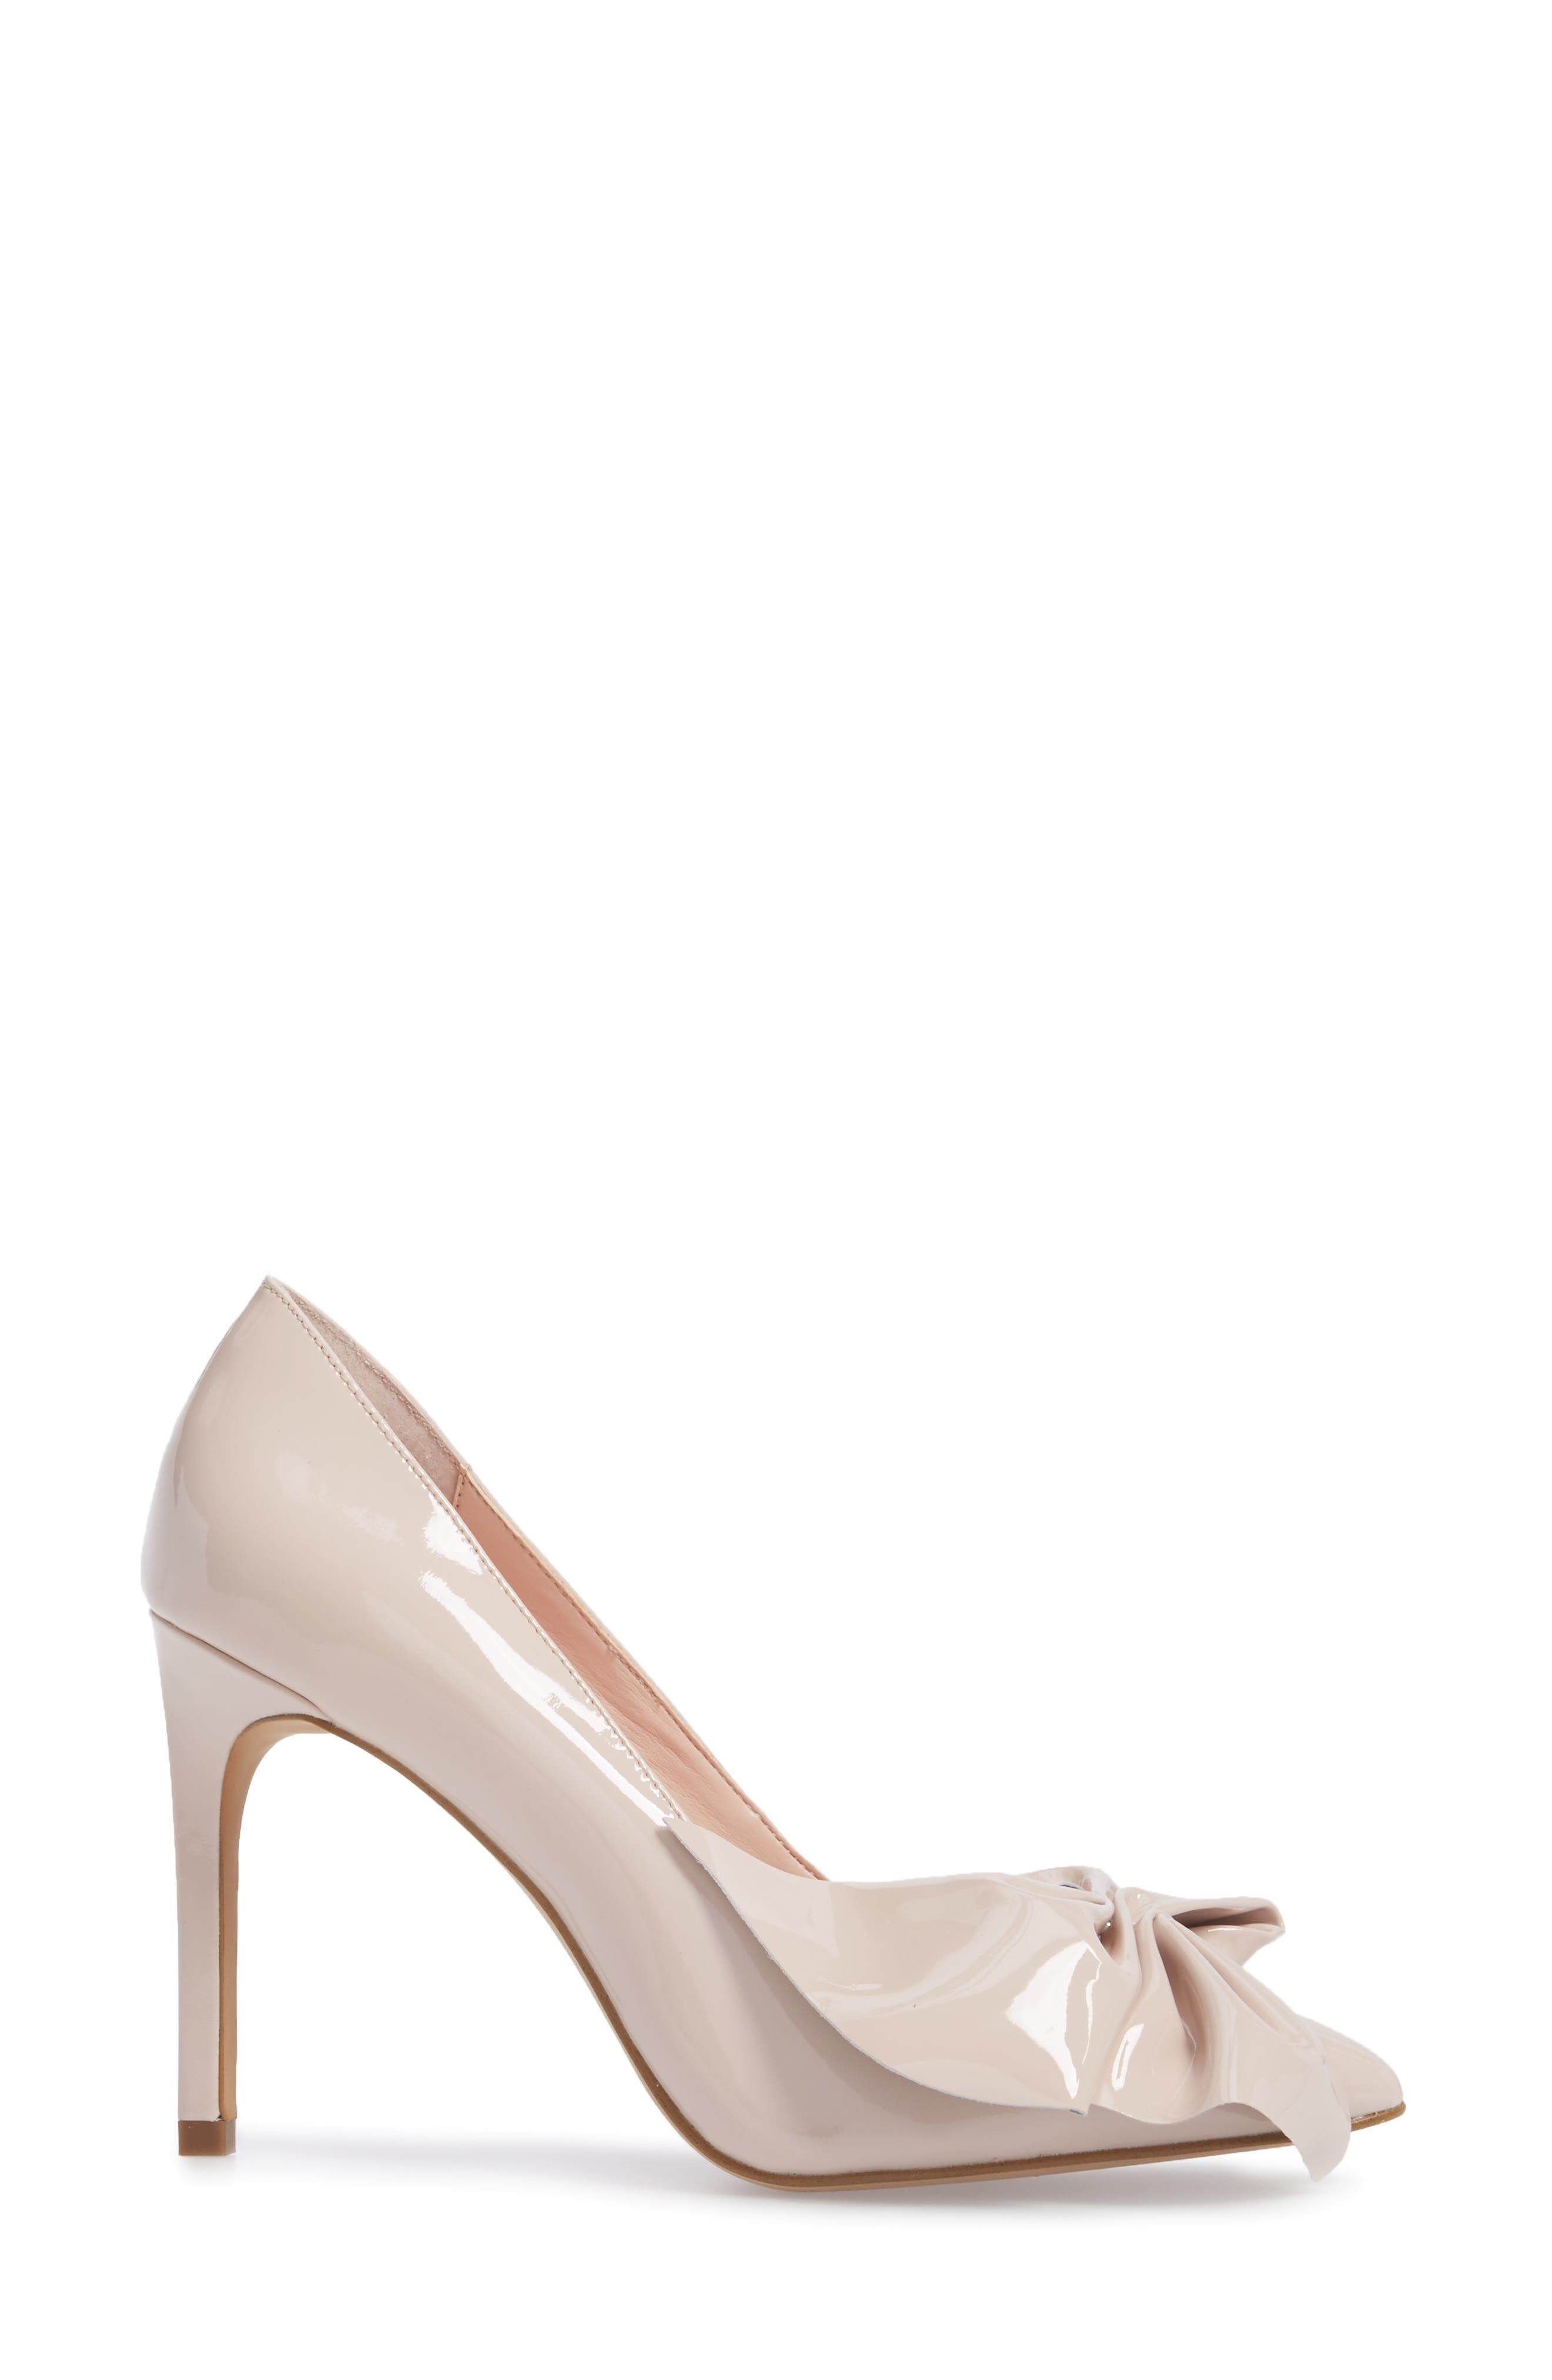 Bow Pointy Toe Pump,                             Alternate thumbnail 3, color,                             Avec Pink Leather